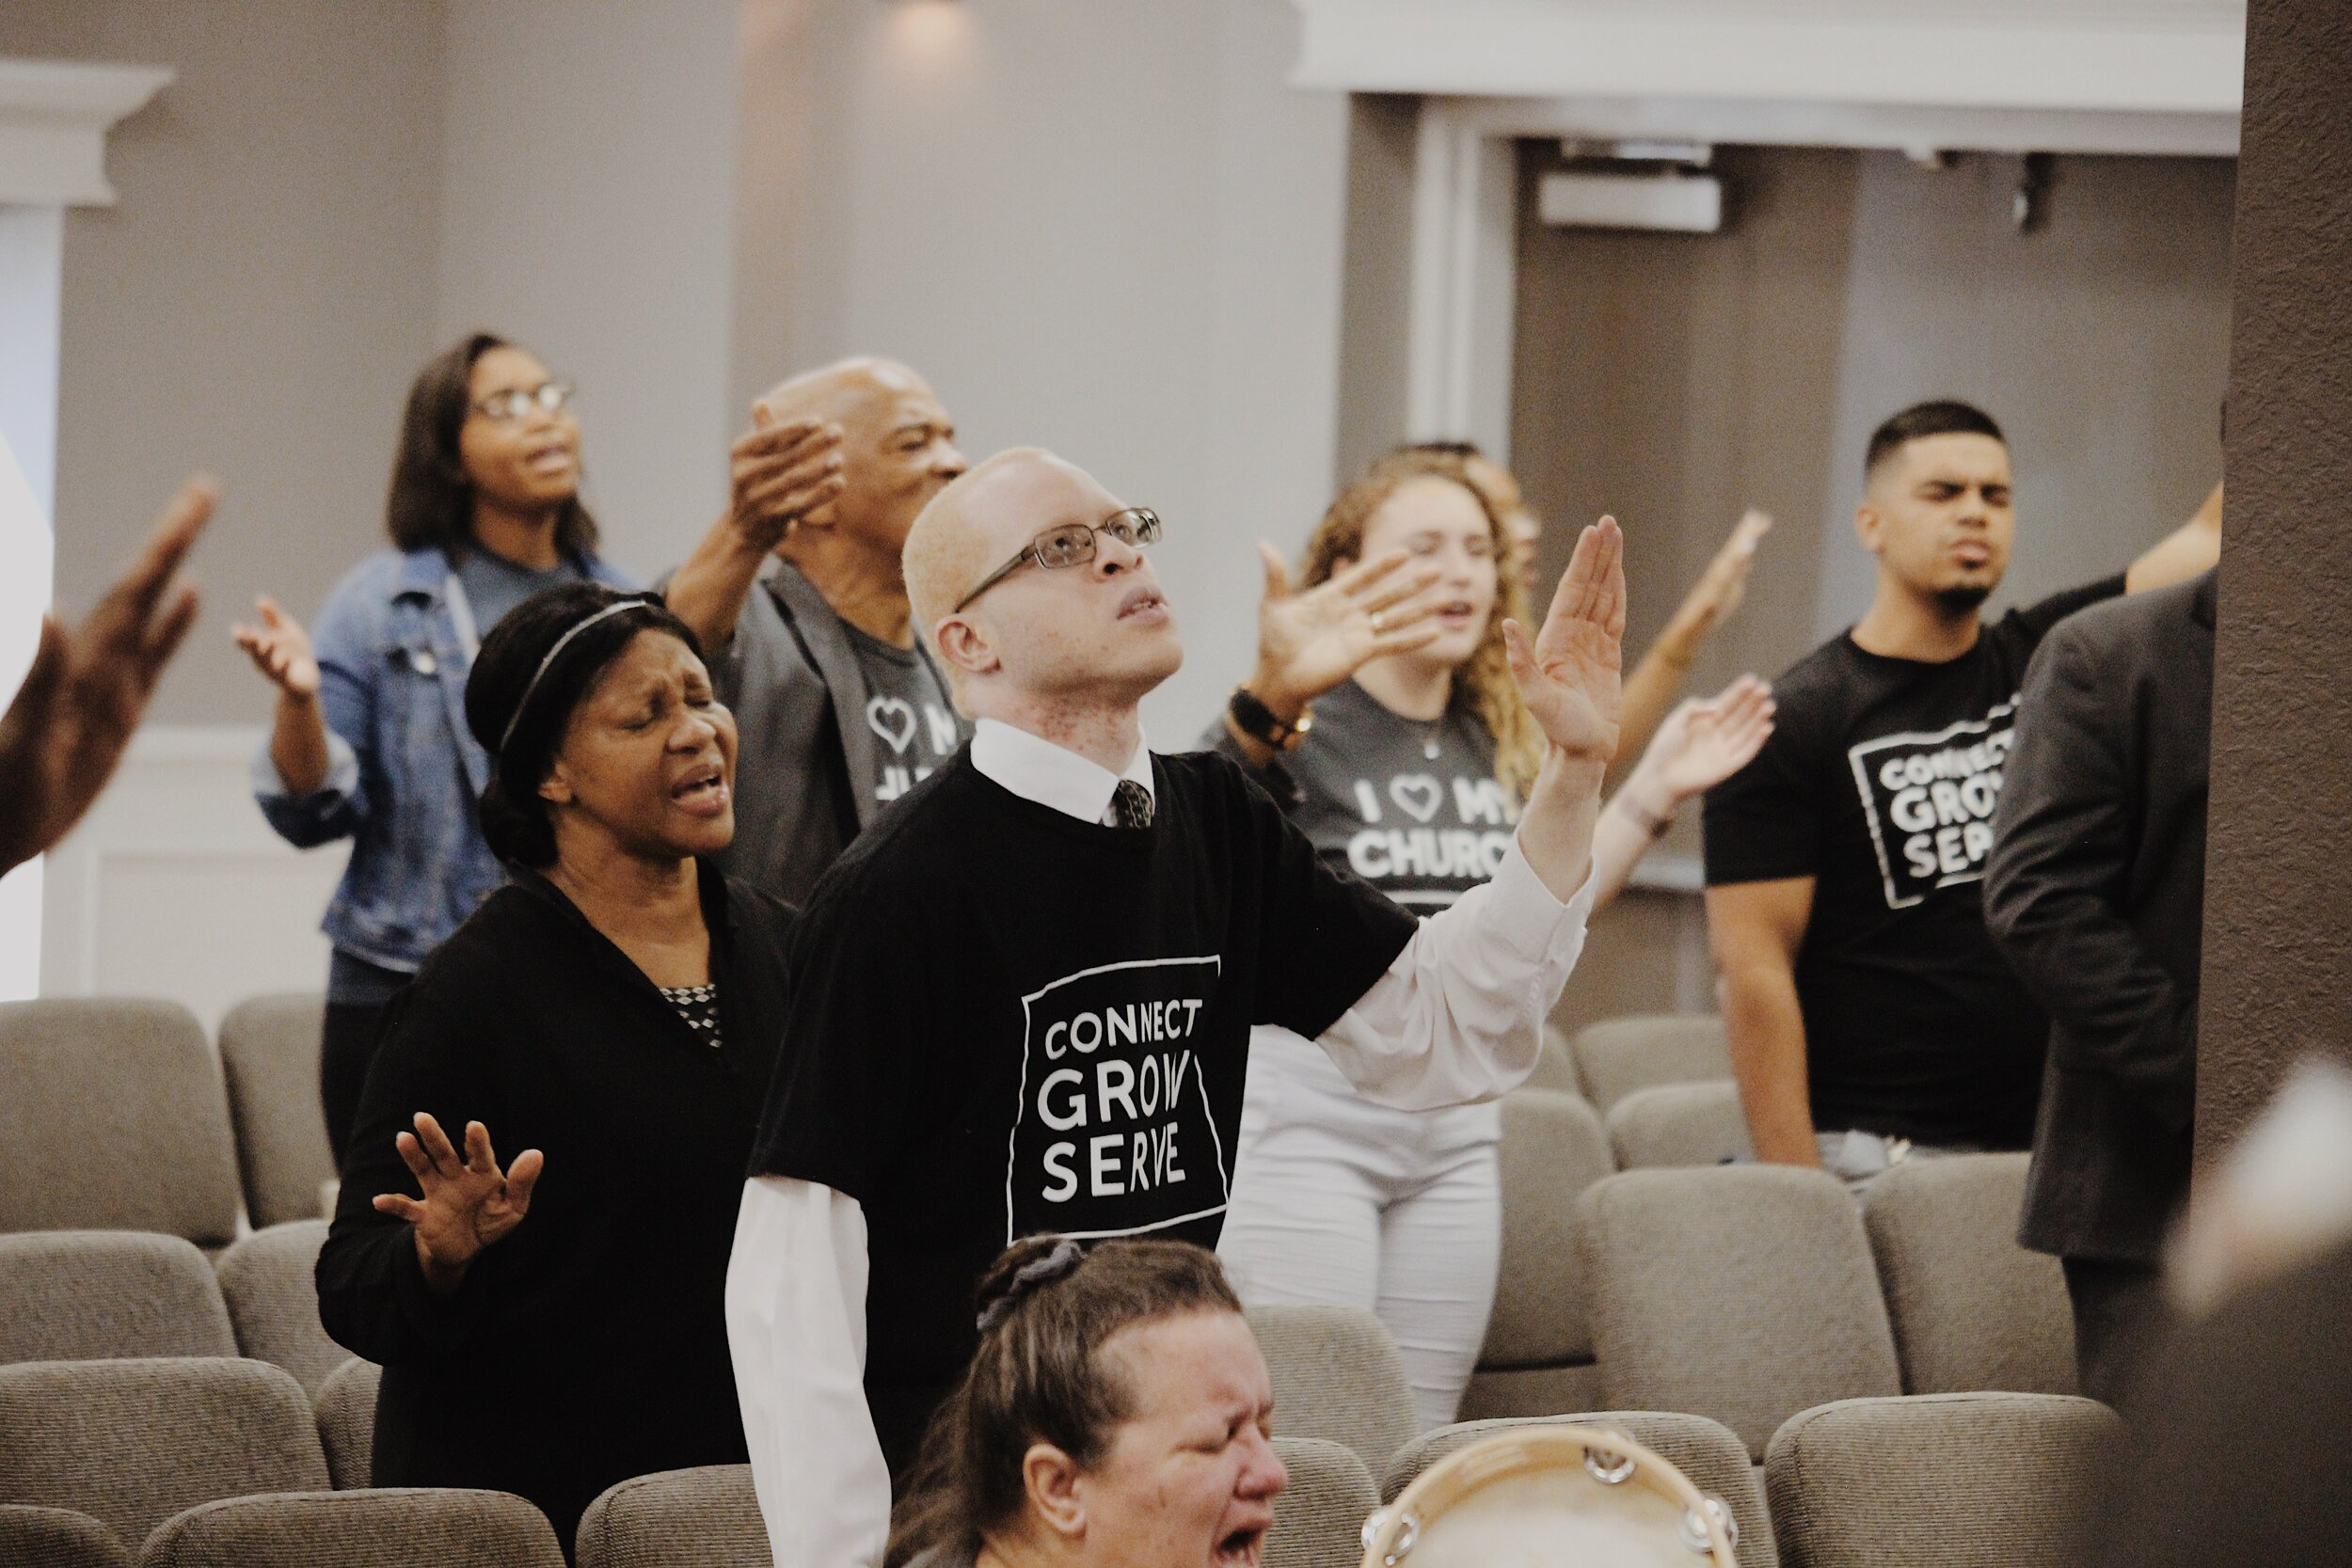 WHAT TO EXPECT - When you arrive at Orlando Pentecostal Church we want you to feel at home. We want to make sure your first visit is powerful, impactful, and life-changing. Check out our what to expect page to learn about our services.